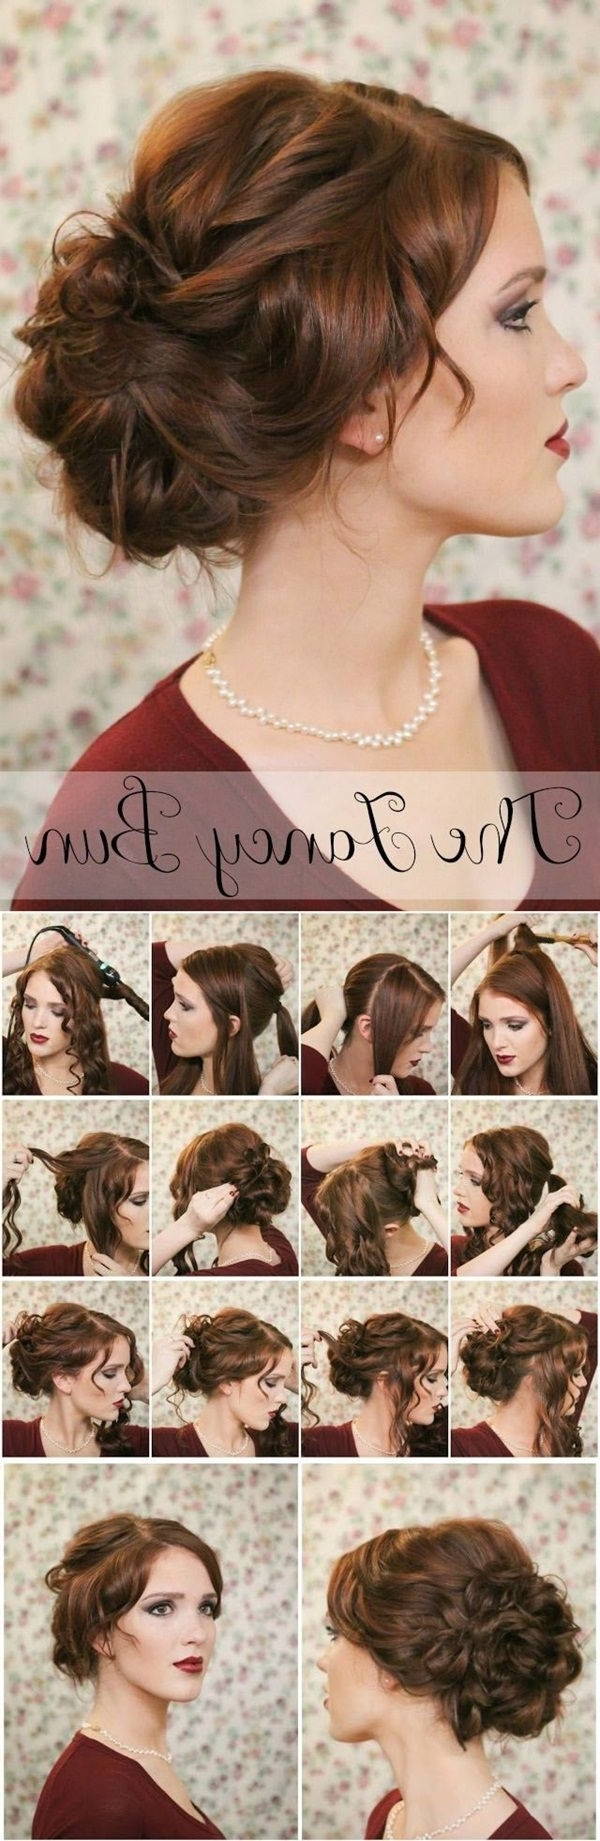 20 Diy Wedding Hairstyles With Tutorials To Try On Your Own Intended For Newest Diy Wedding Updos For Long Hair (View 1 of 15)